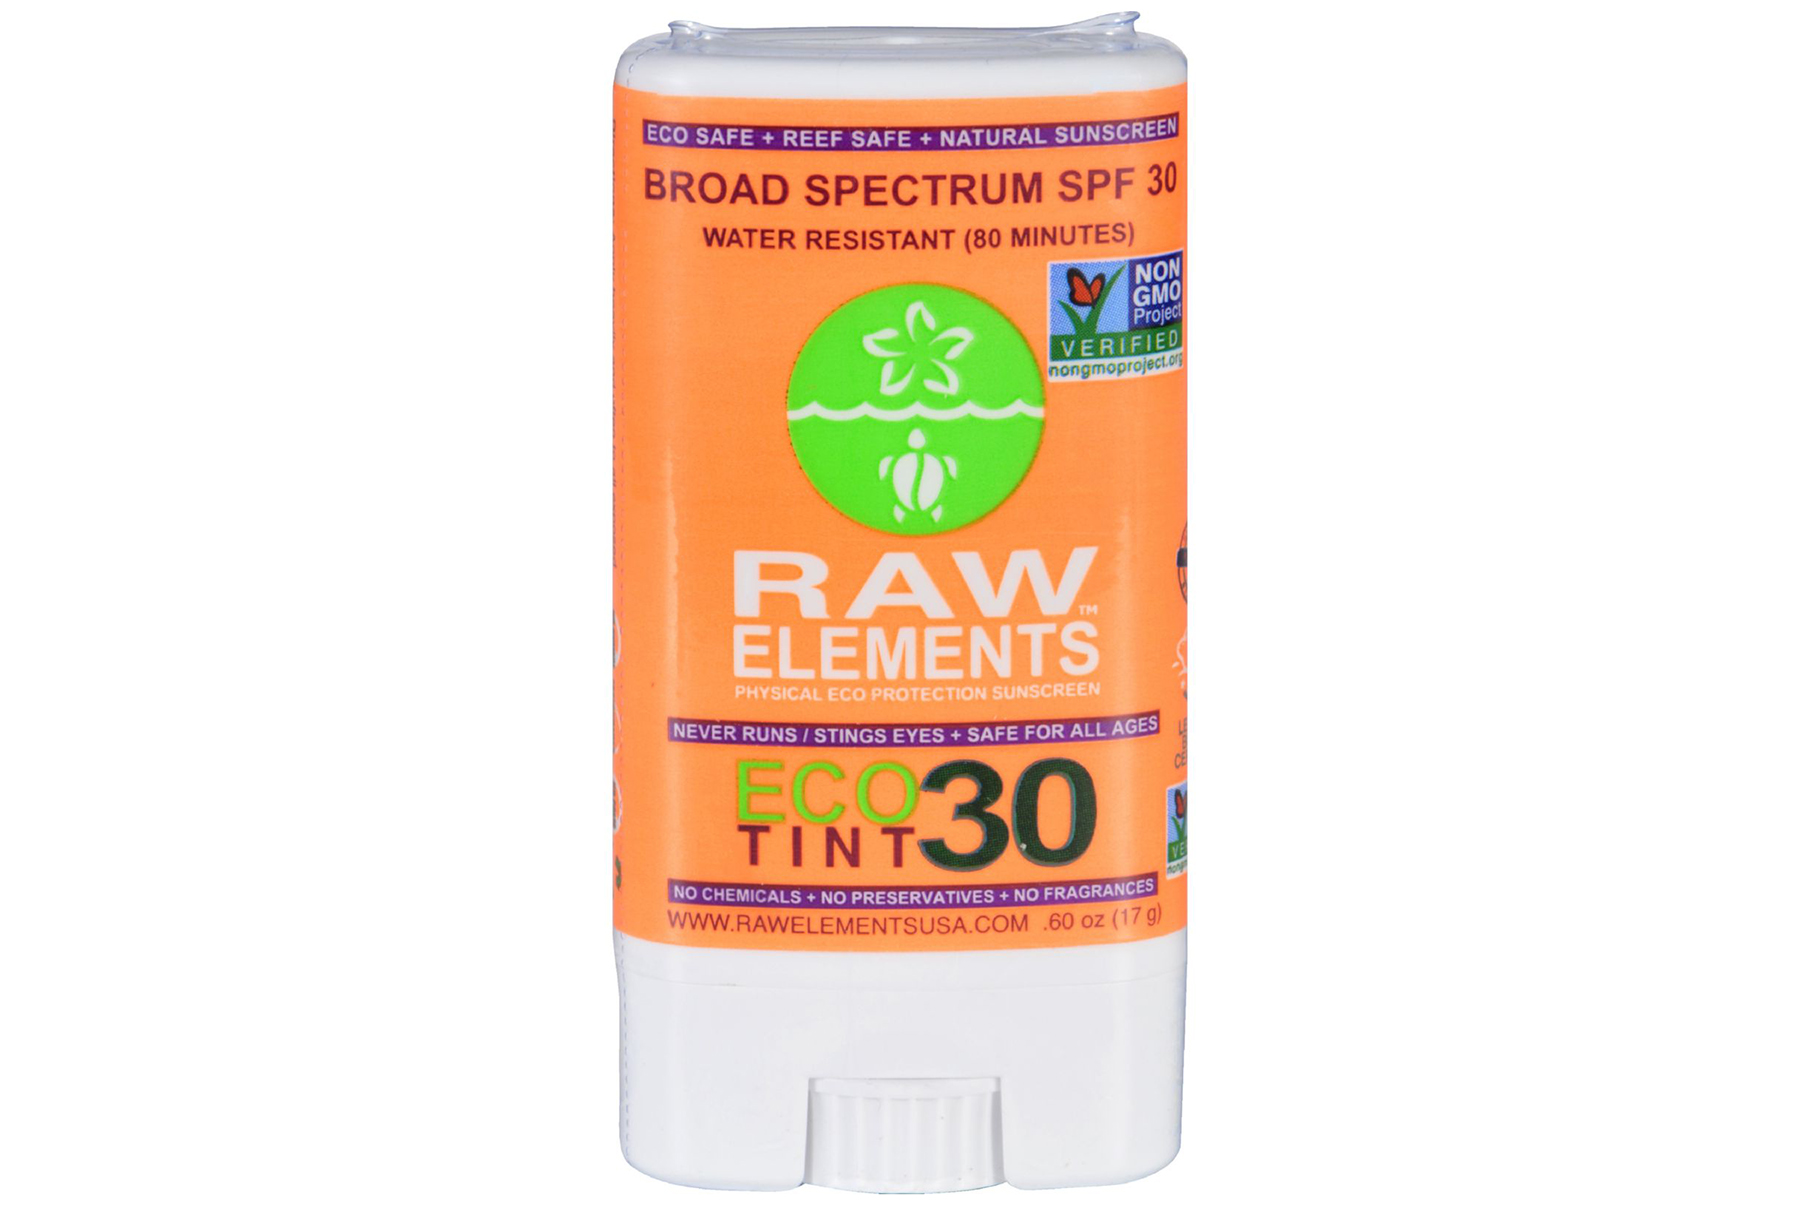 Raw Elements Sunscreen Eco Tint Stick SPF 30